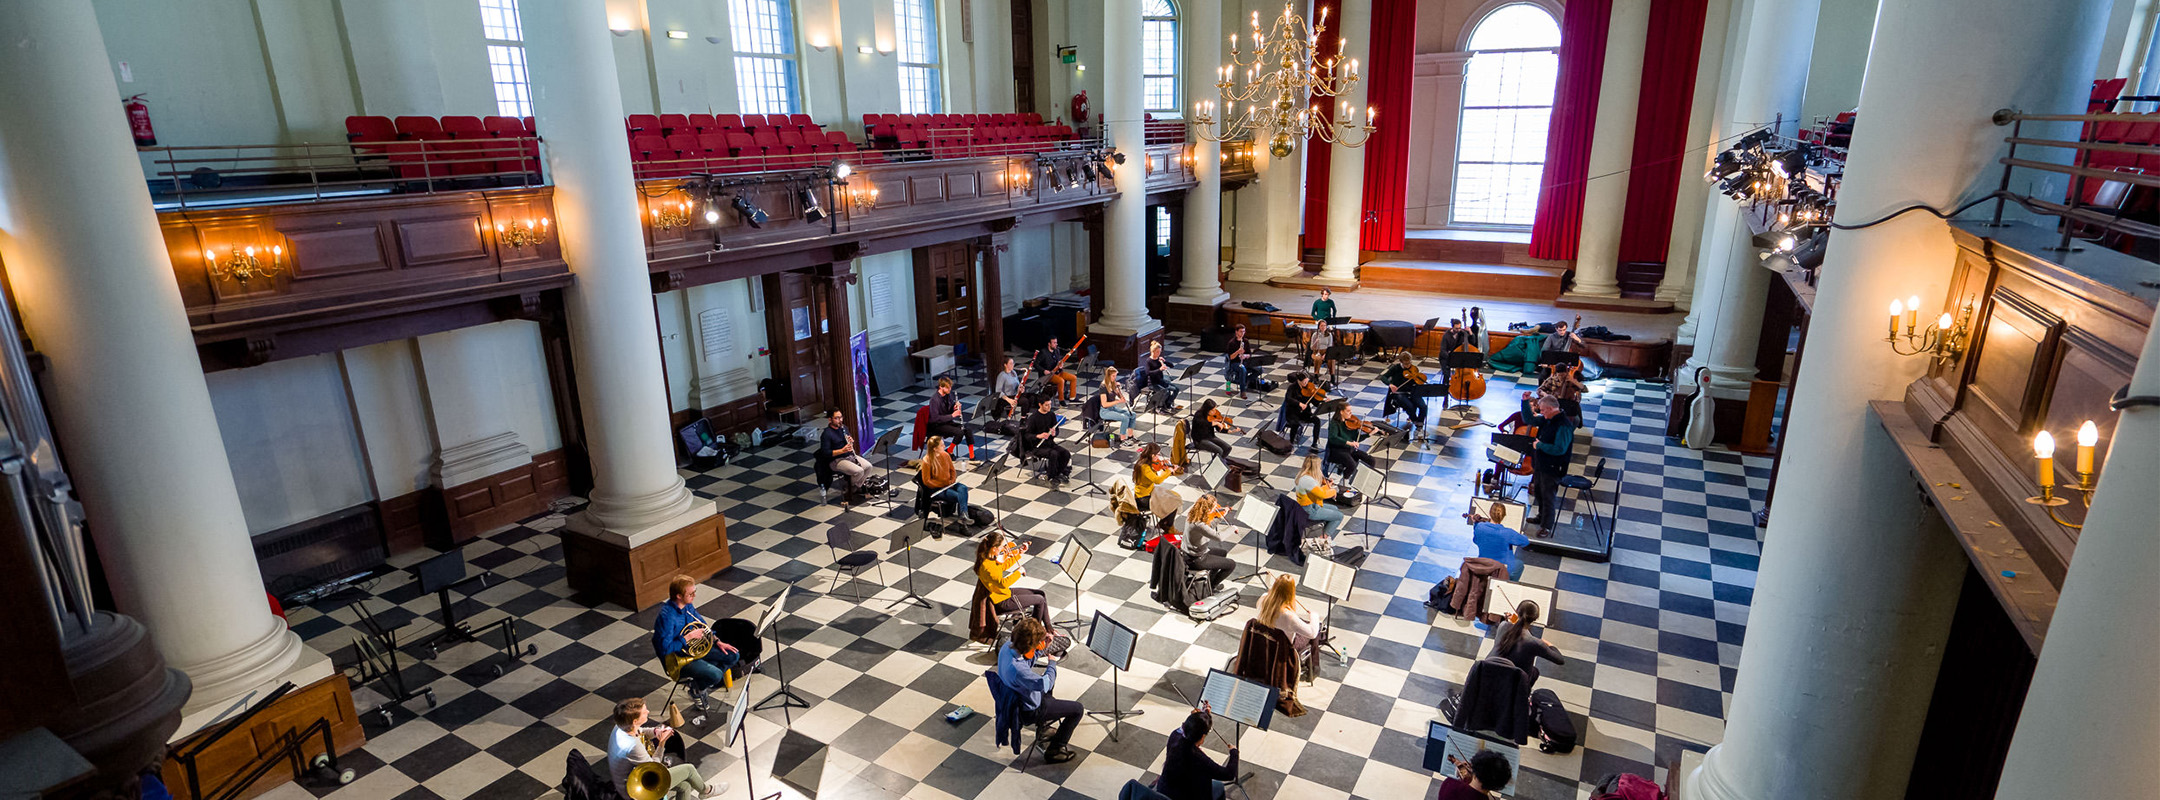 Southbank Sinfonia at St John's Smith Square: Building a Sound Future Together